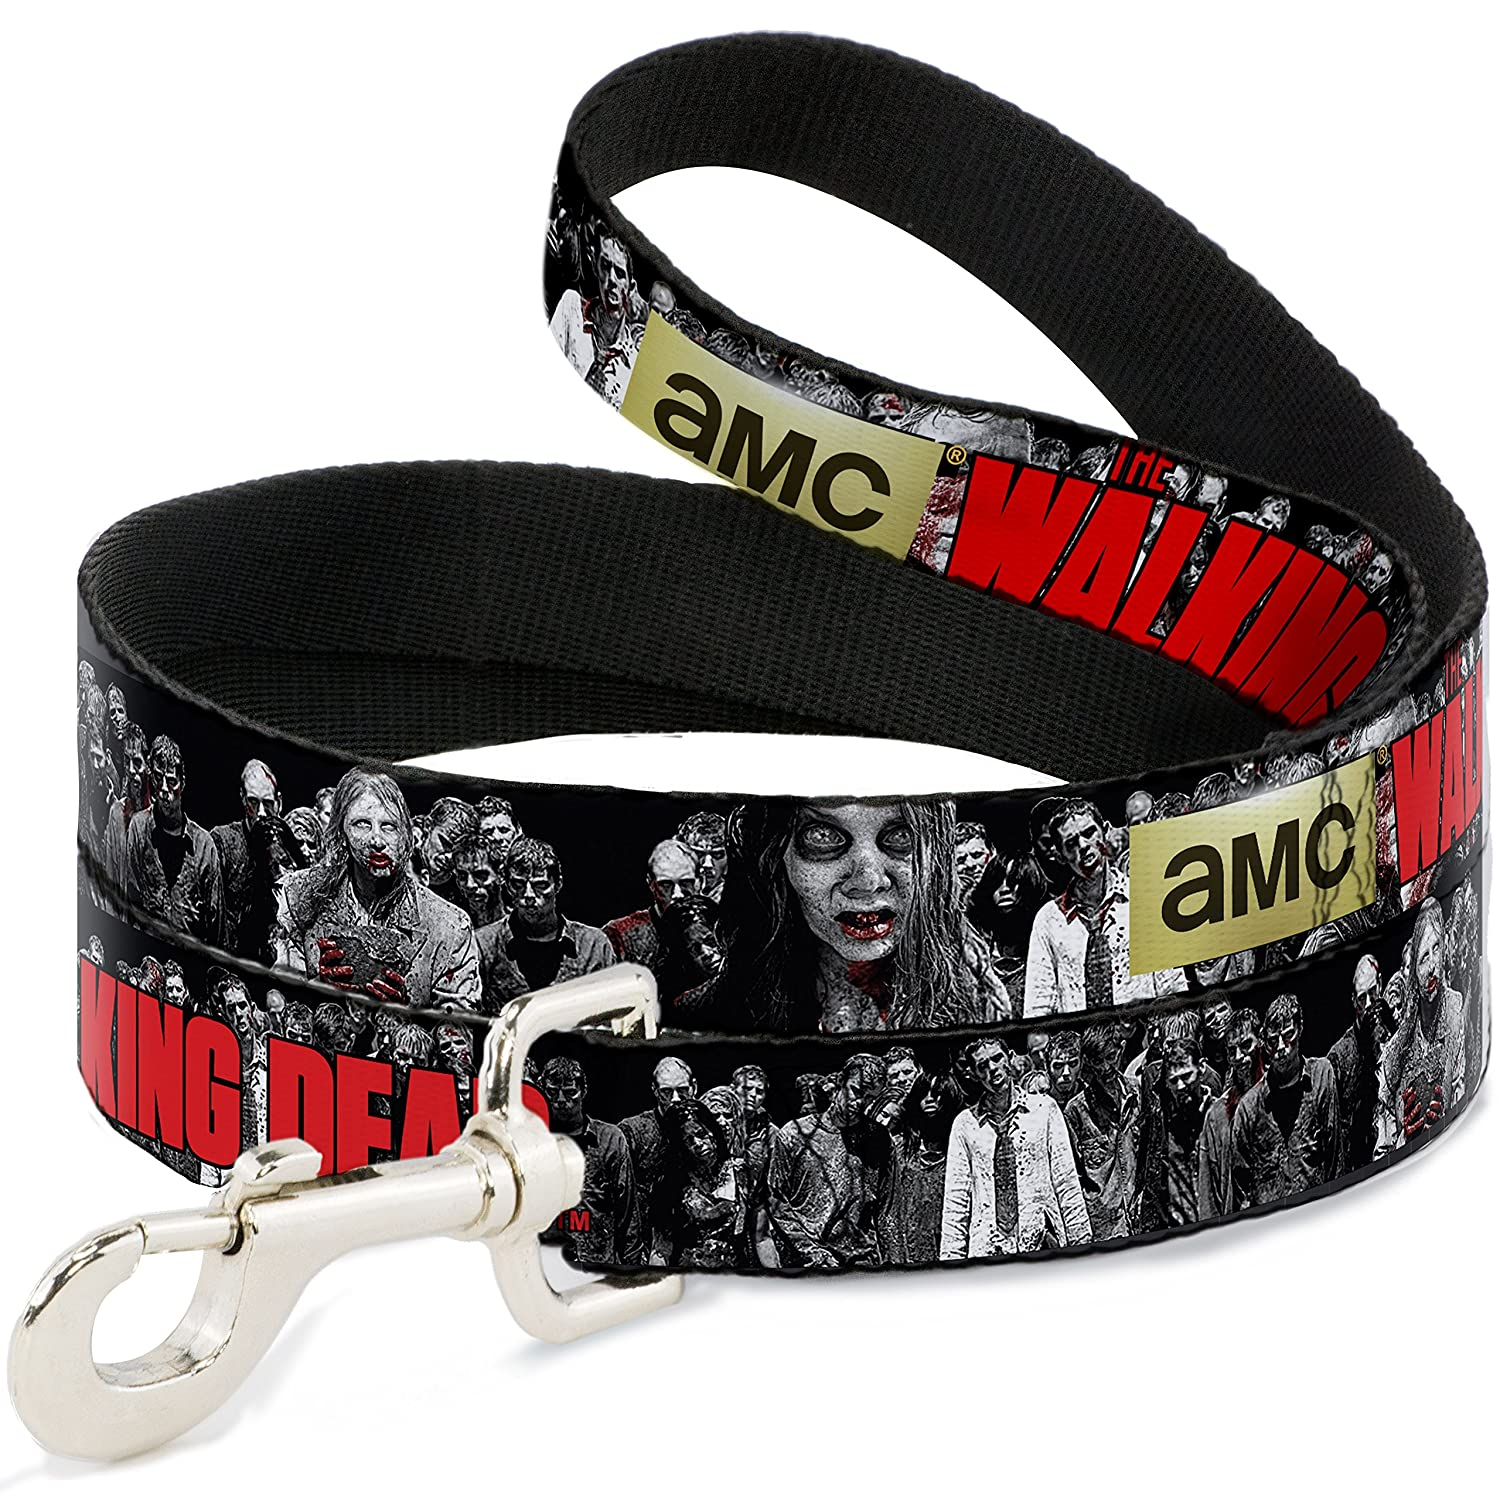 Buckle-Down AMC The Walking Dead Zombies2 Black White Red  Dog Leash, 6'